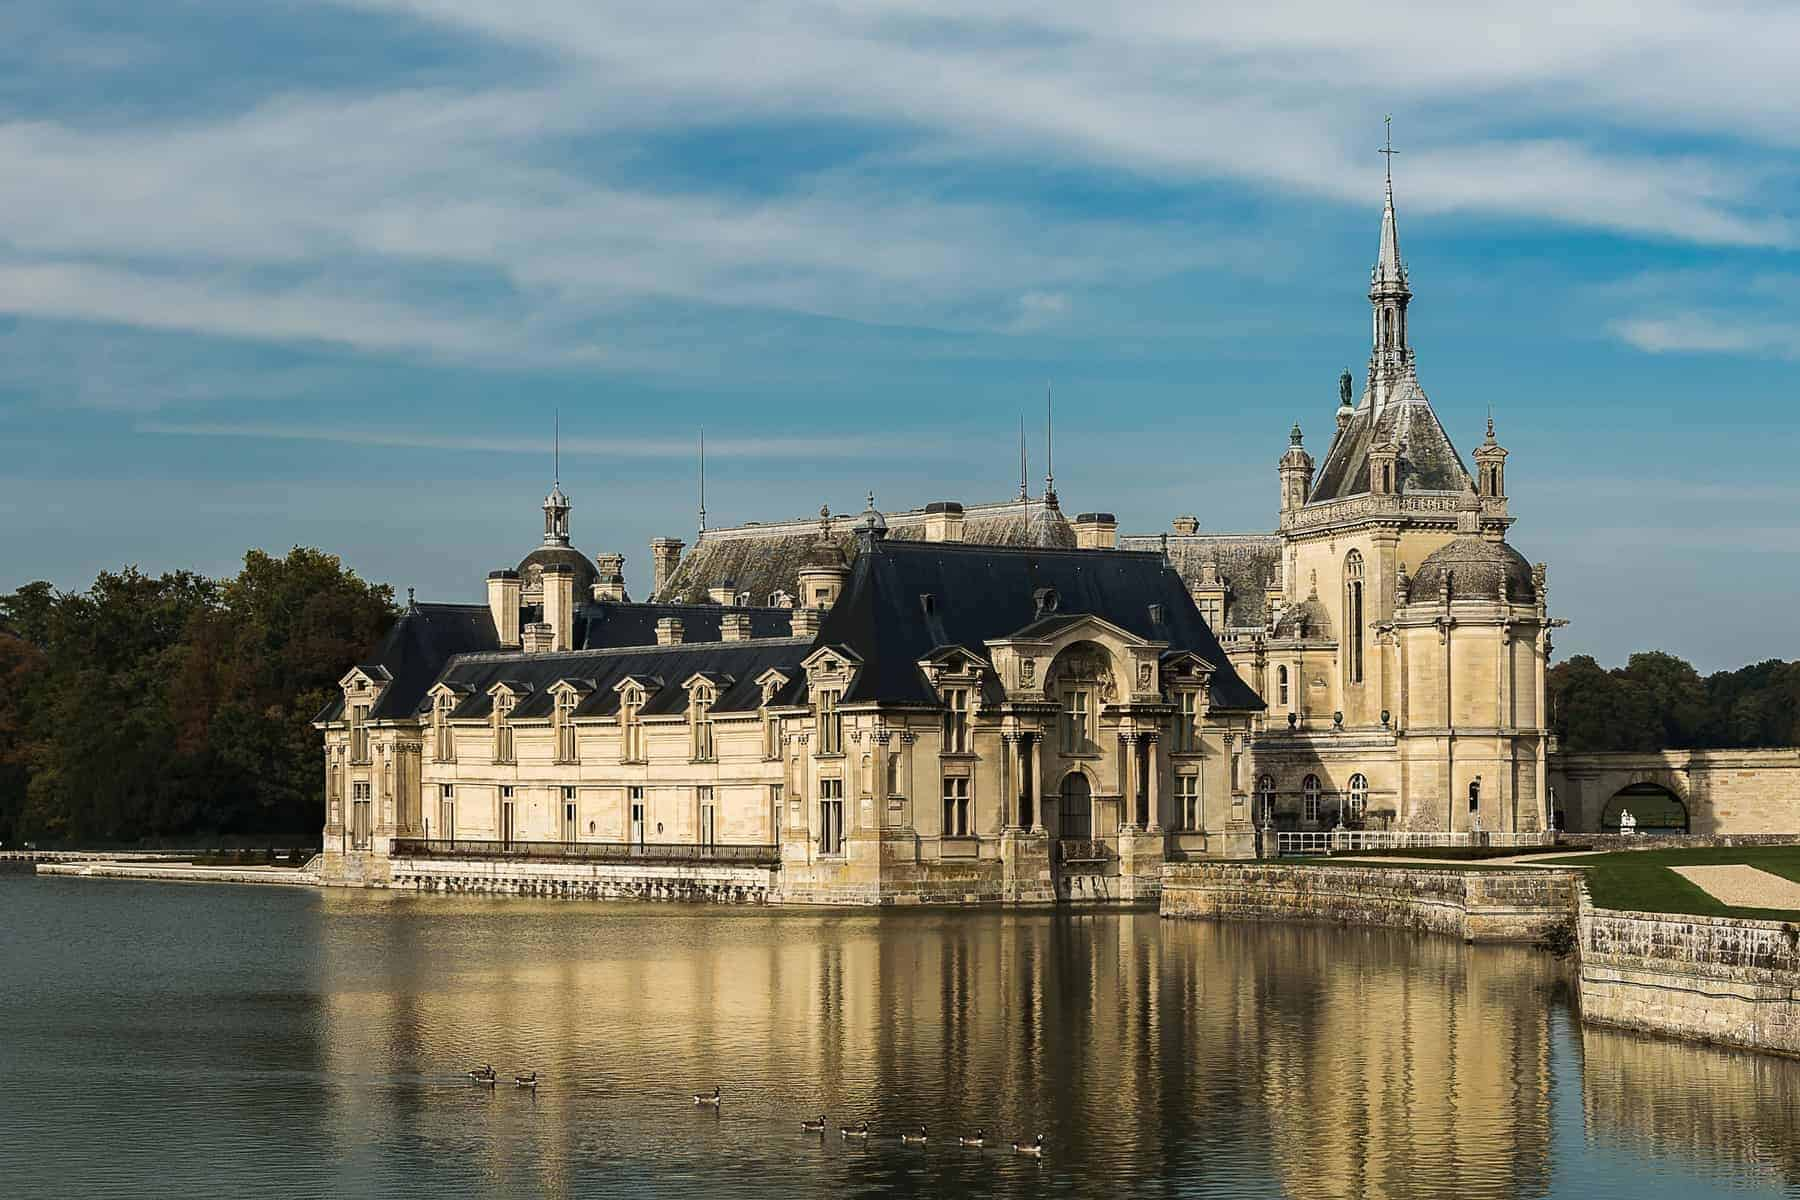 Chateau de Chantilly and the geese crossing the pond